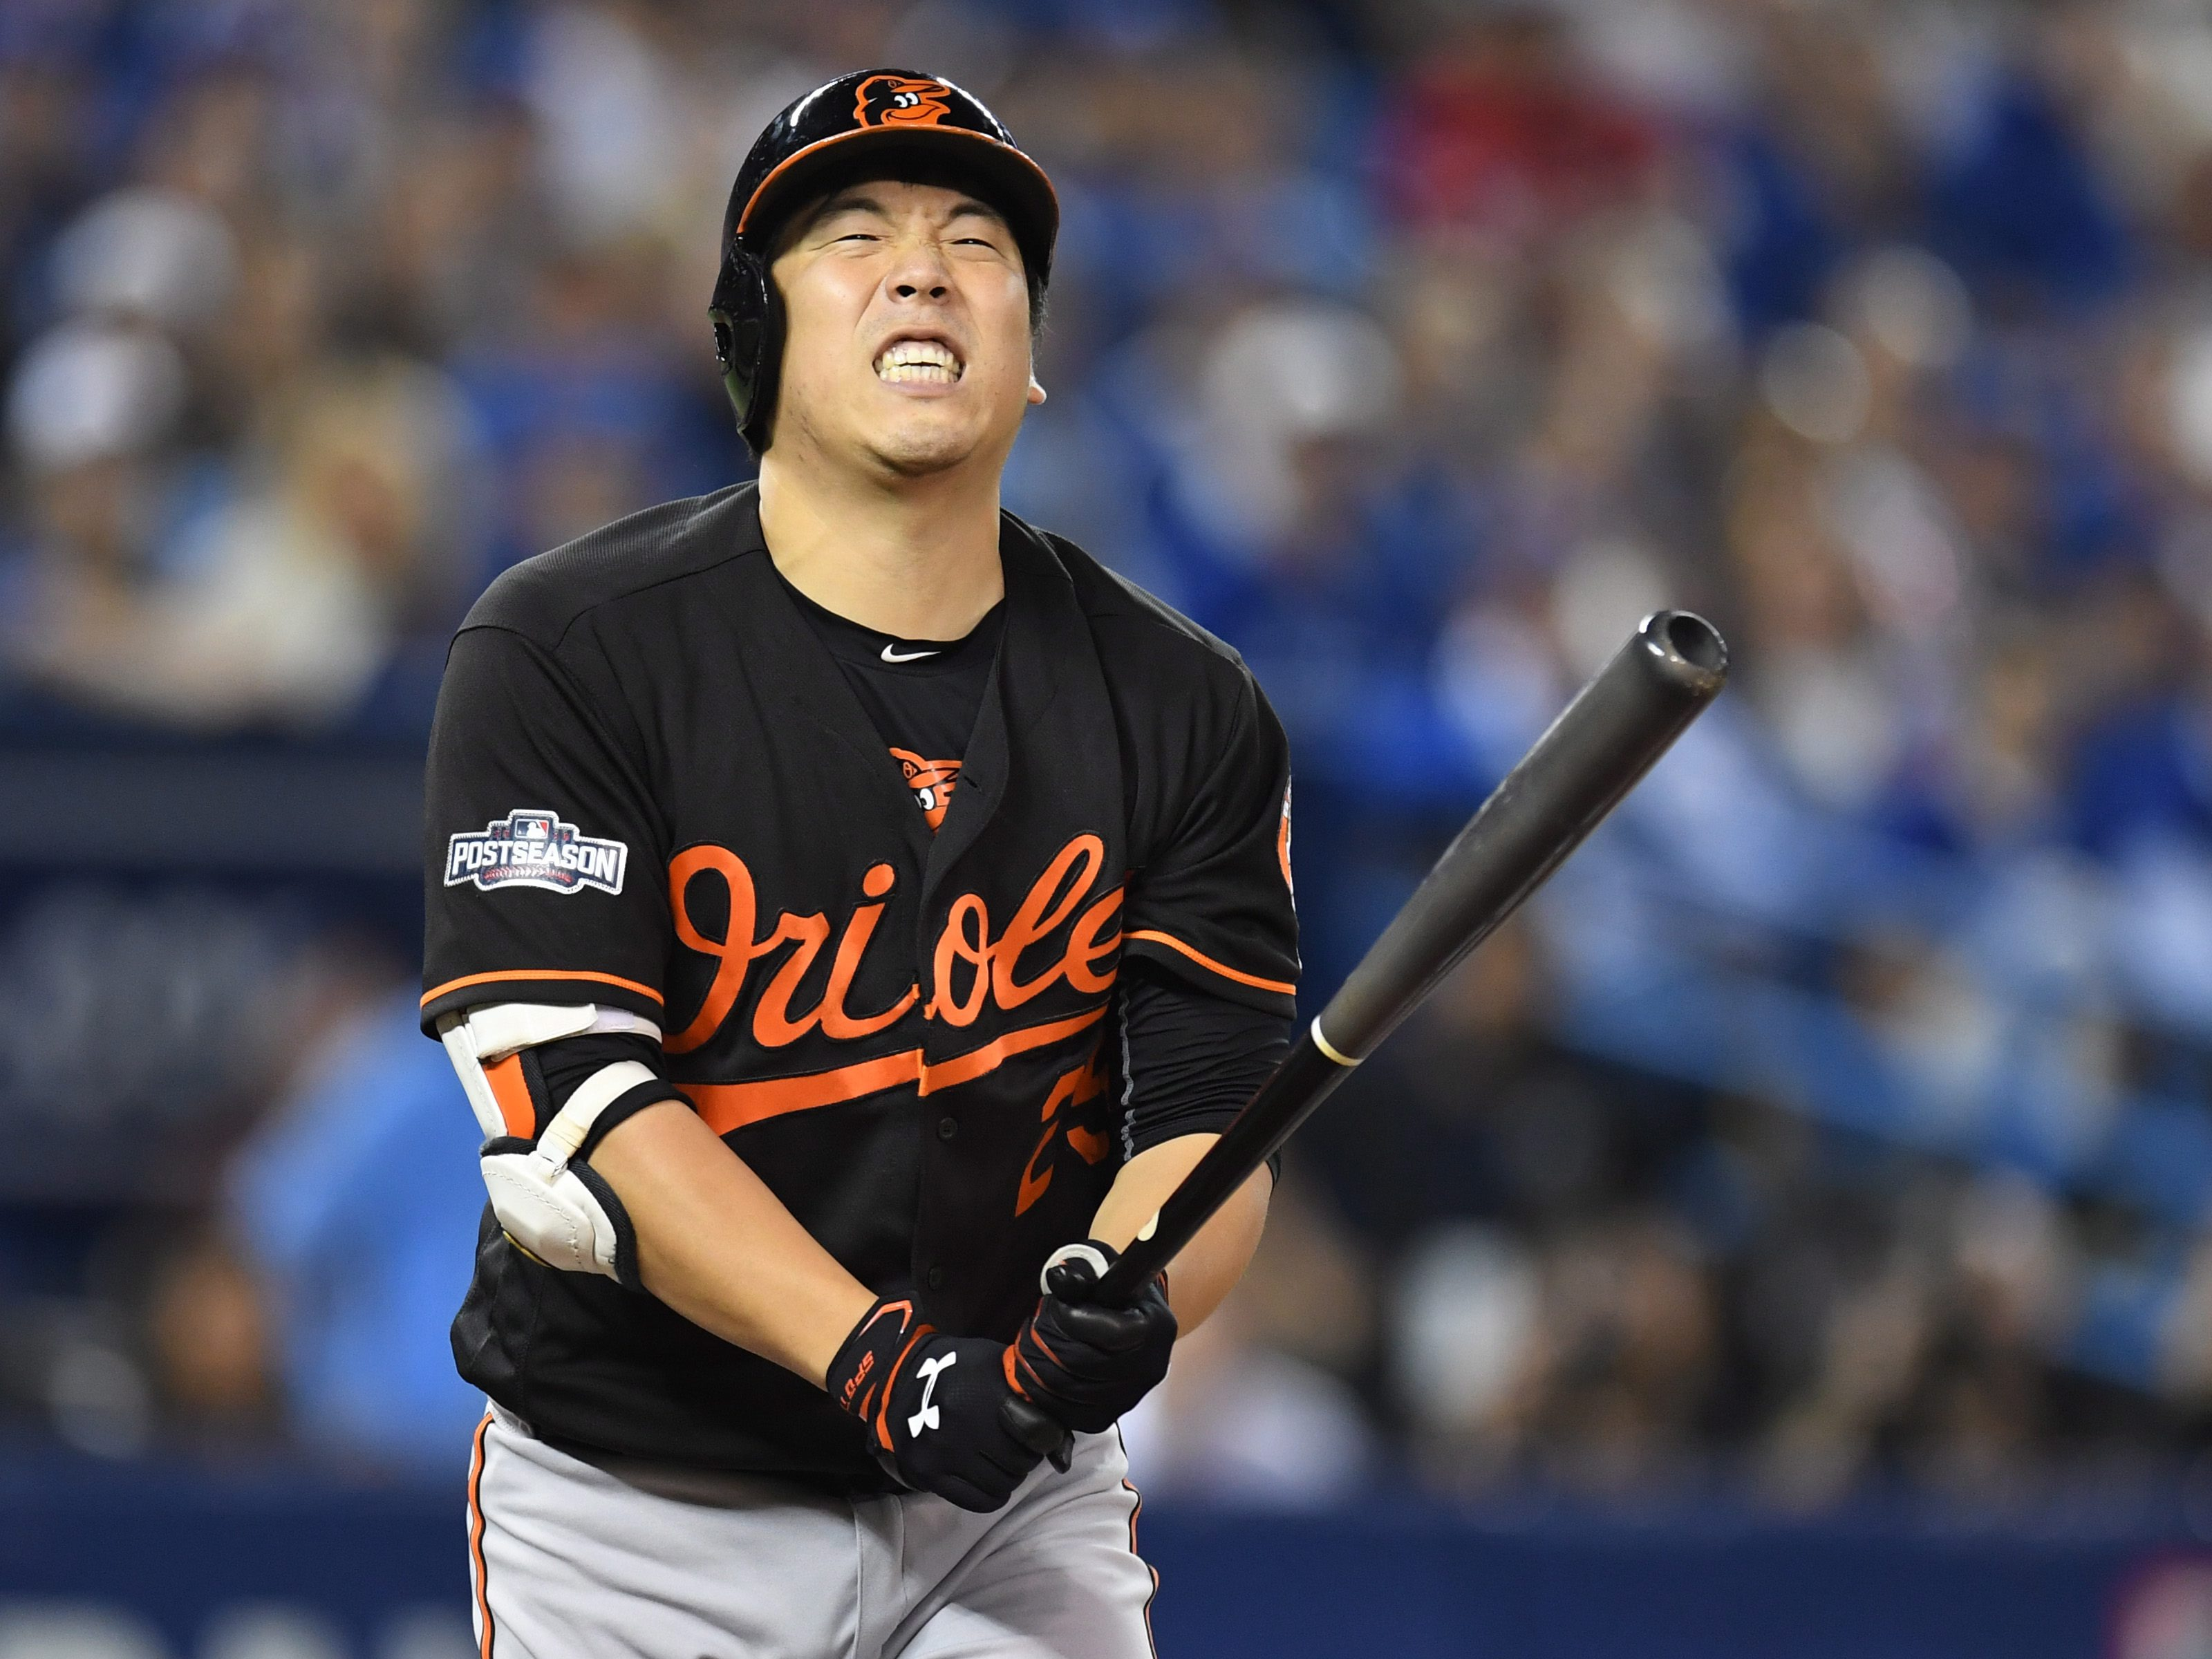 Baltimore Orioles' Hyun Soo Kim reacts to a strike against the Toronto Blue Jays during fourth inning of an American League wild-card baseball game in Toronto, Tuesday, Oct. 4, 2016. (Frank Gunn/The Canadian Press via AP)